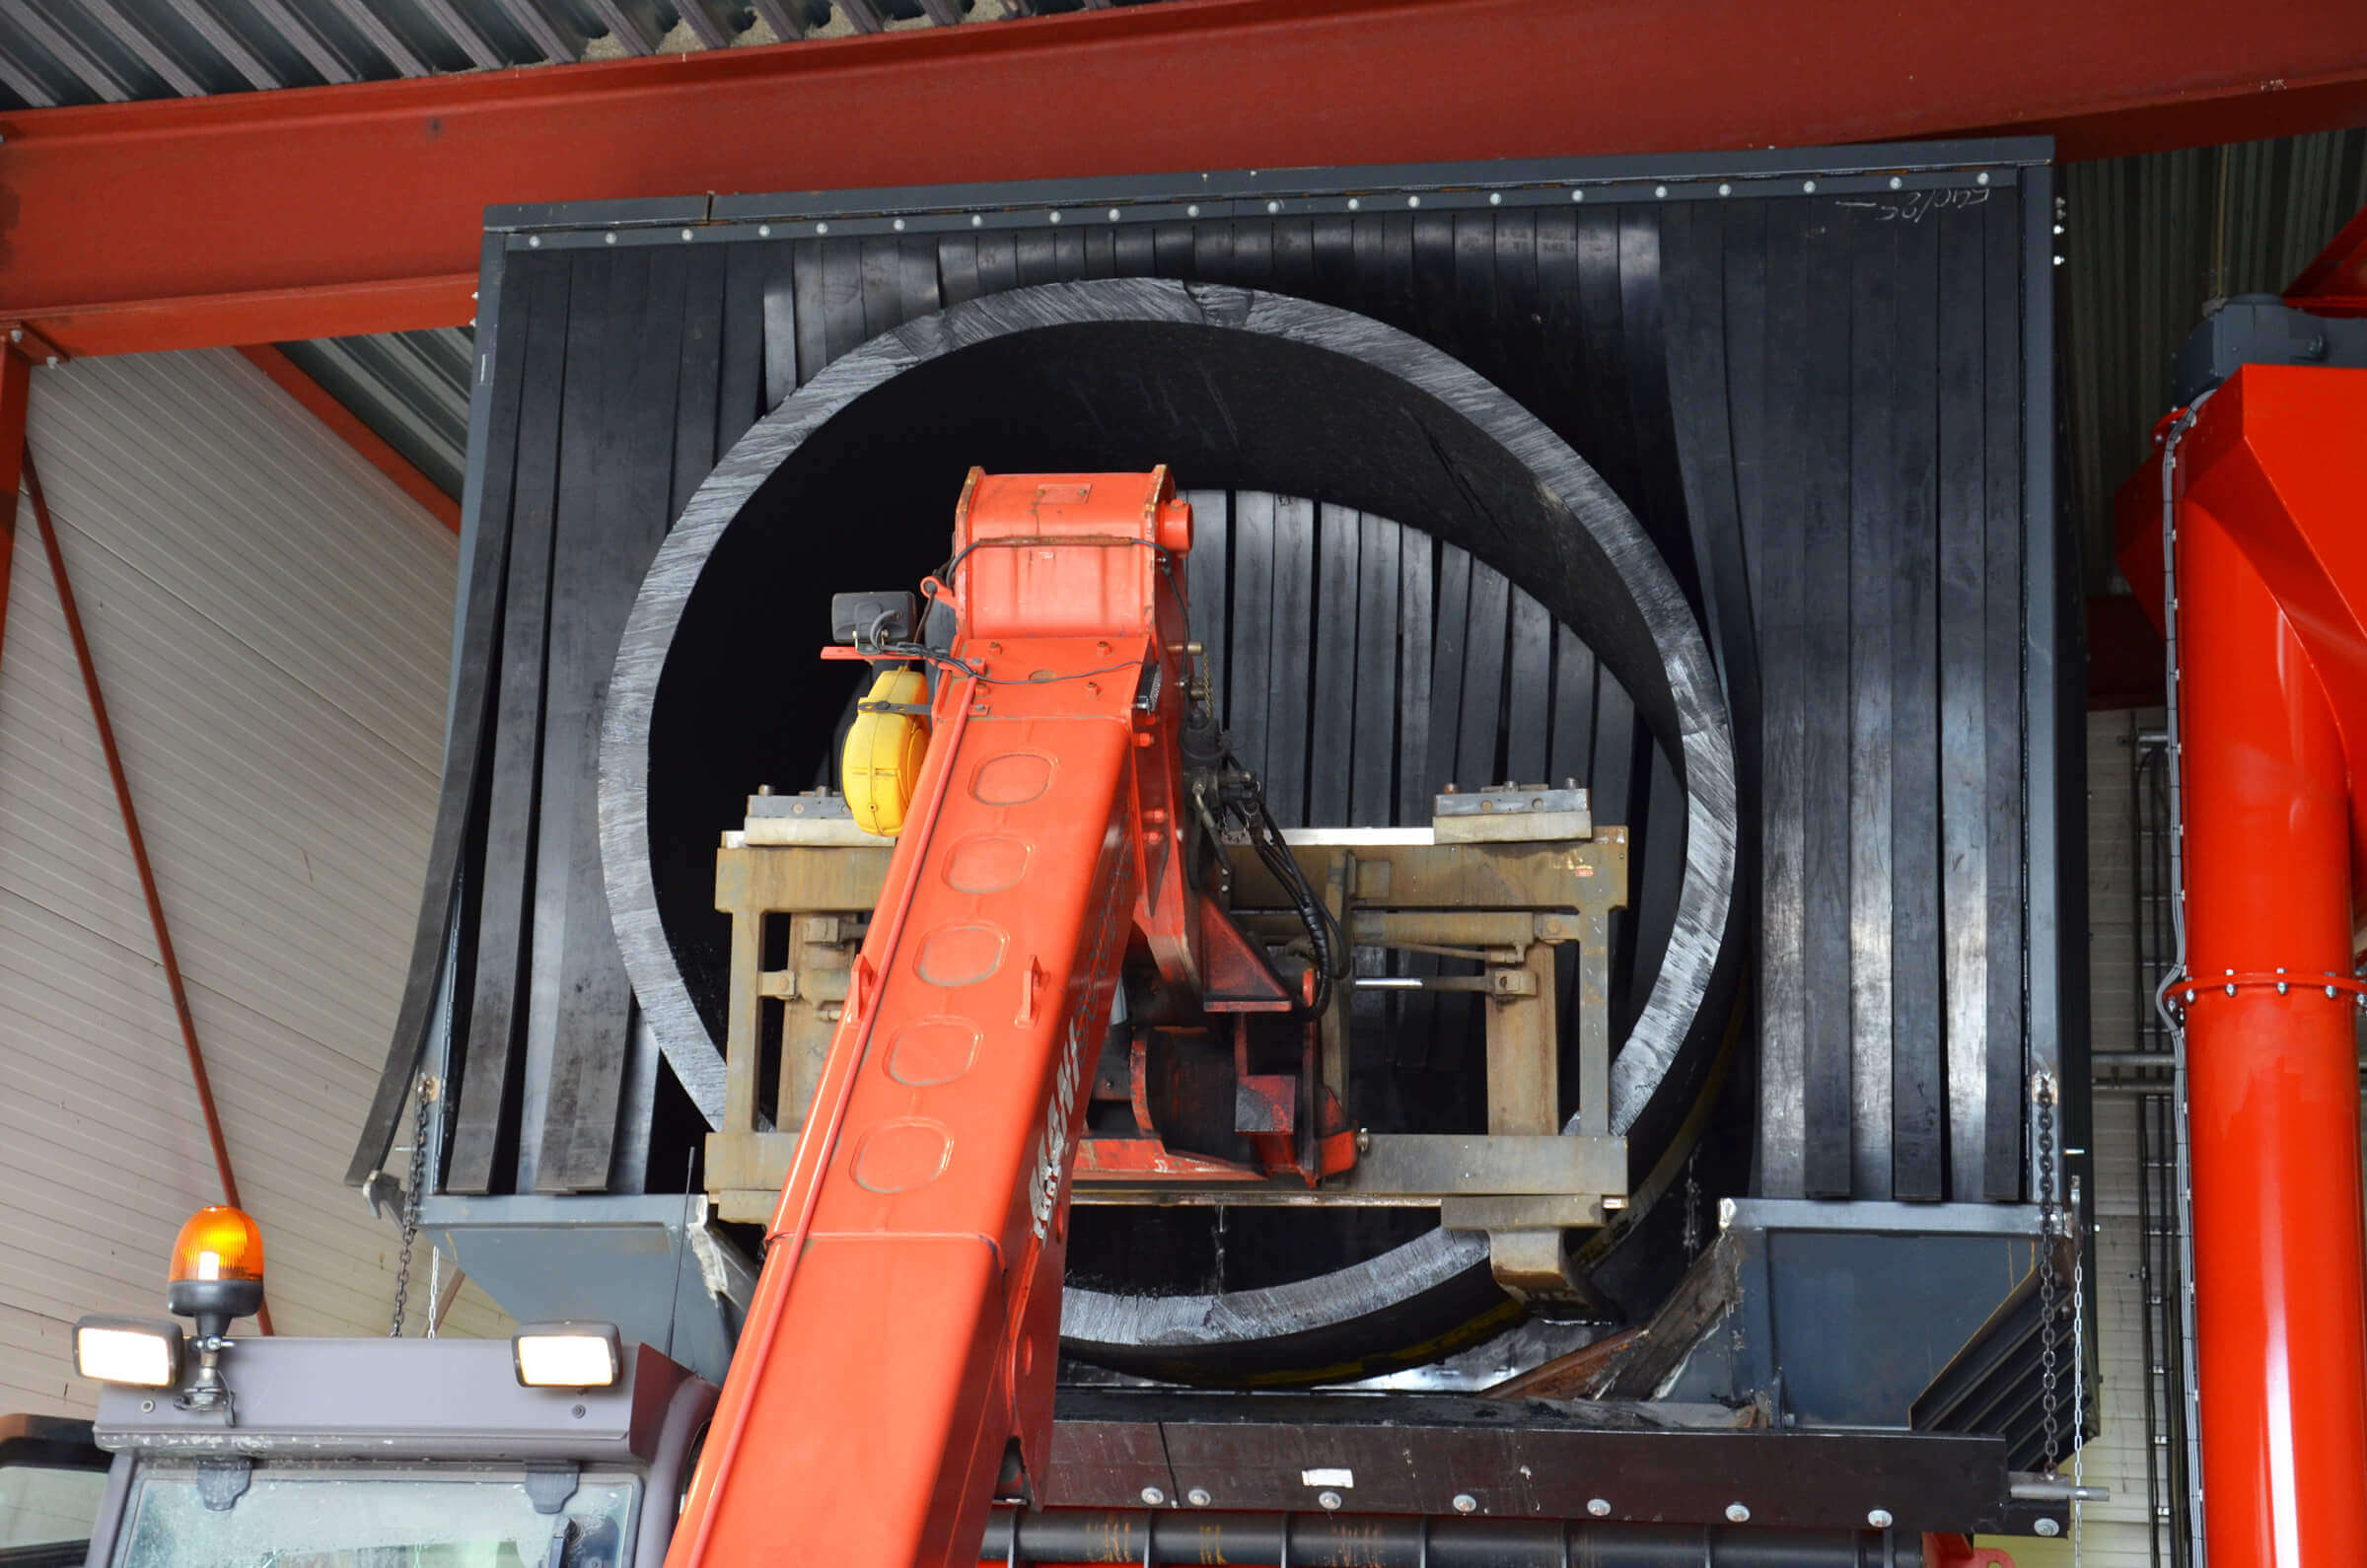 2.5 diameter pipe cuttings are loaded into the WEIMA shredder